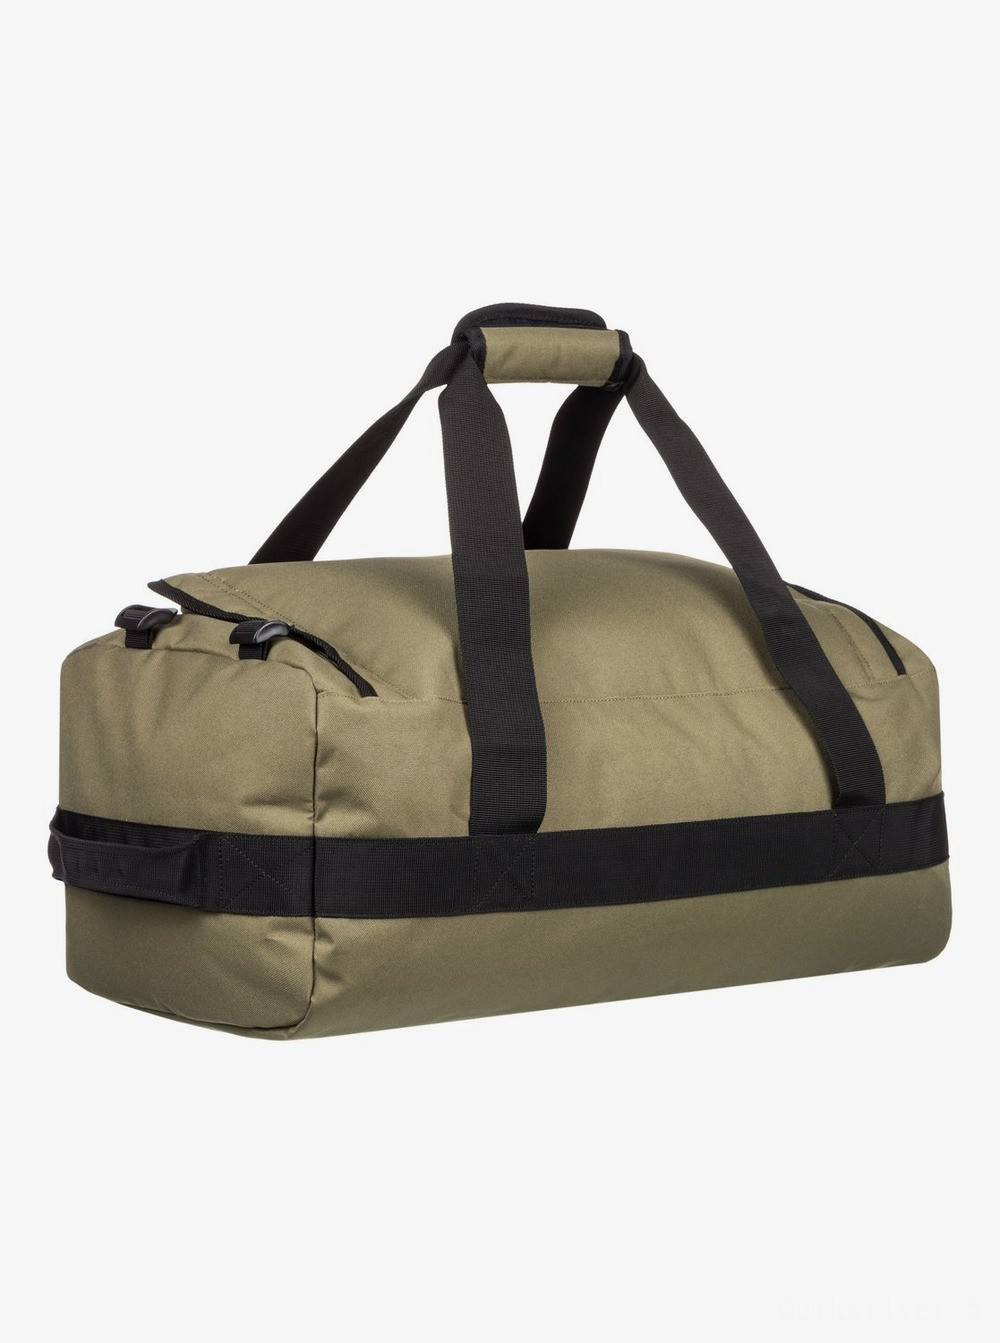 last chance crossing 60l large travel duffle bag - burnt olive limited sale best price